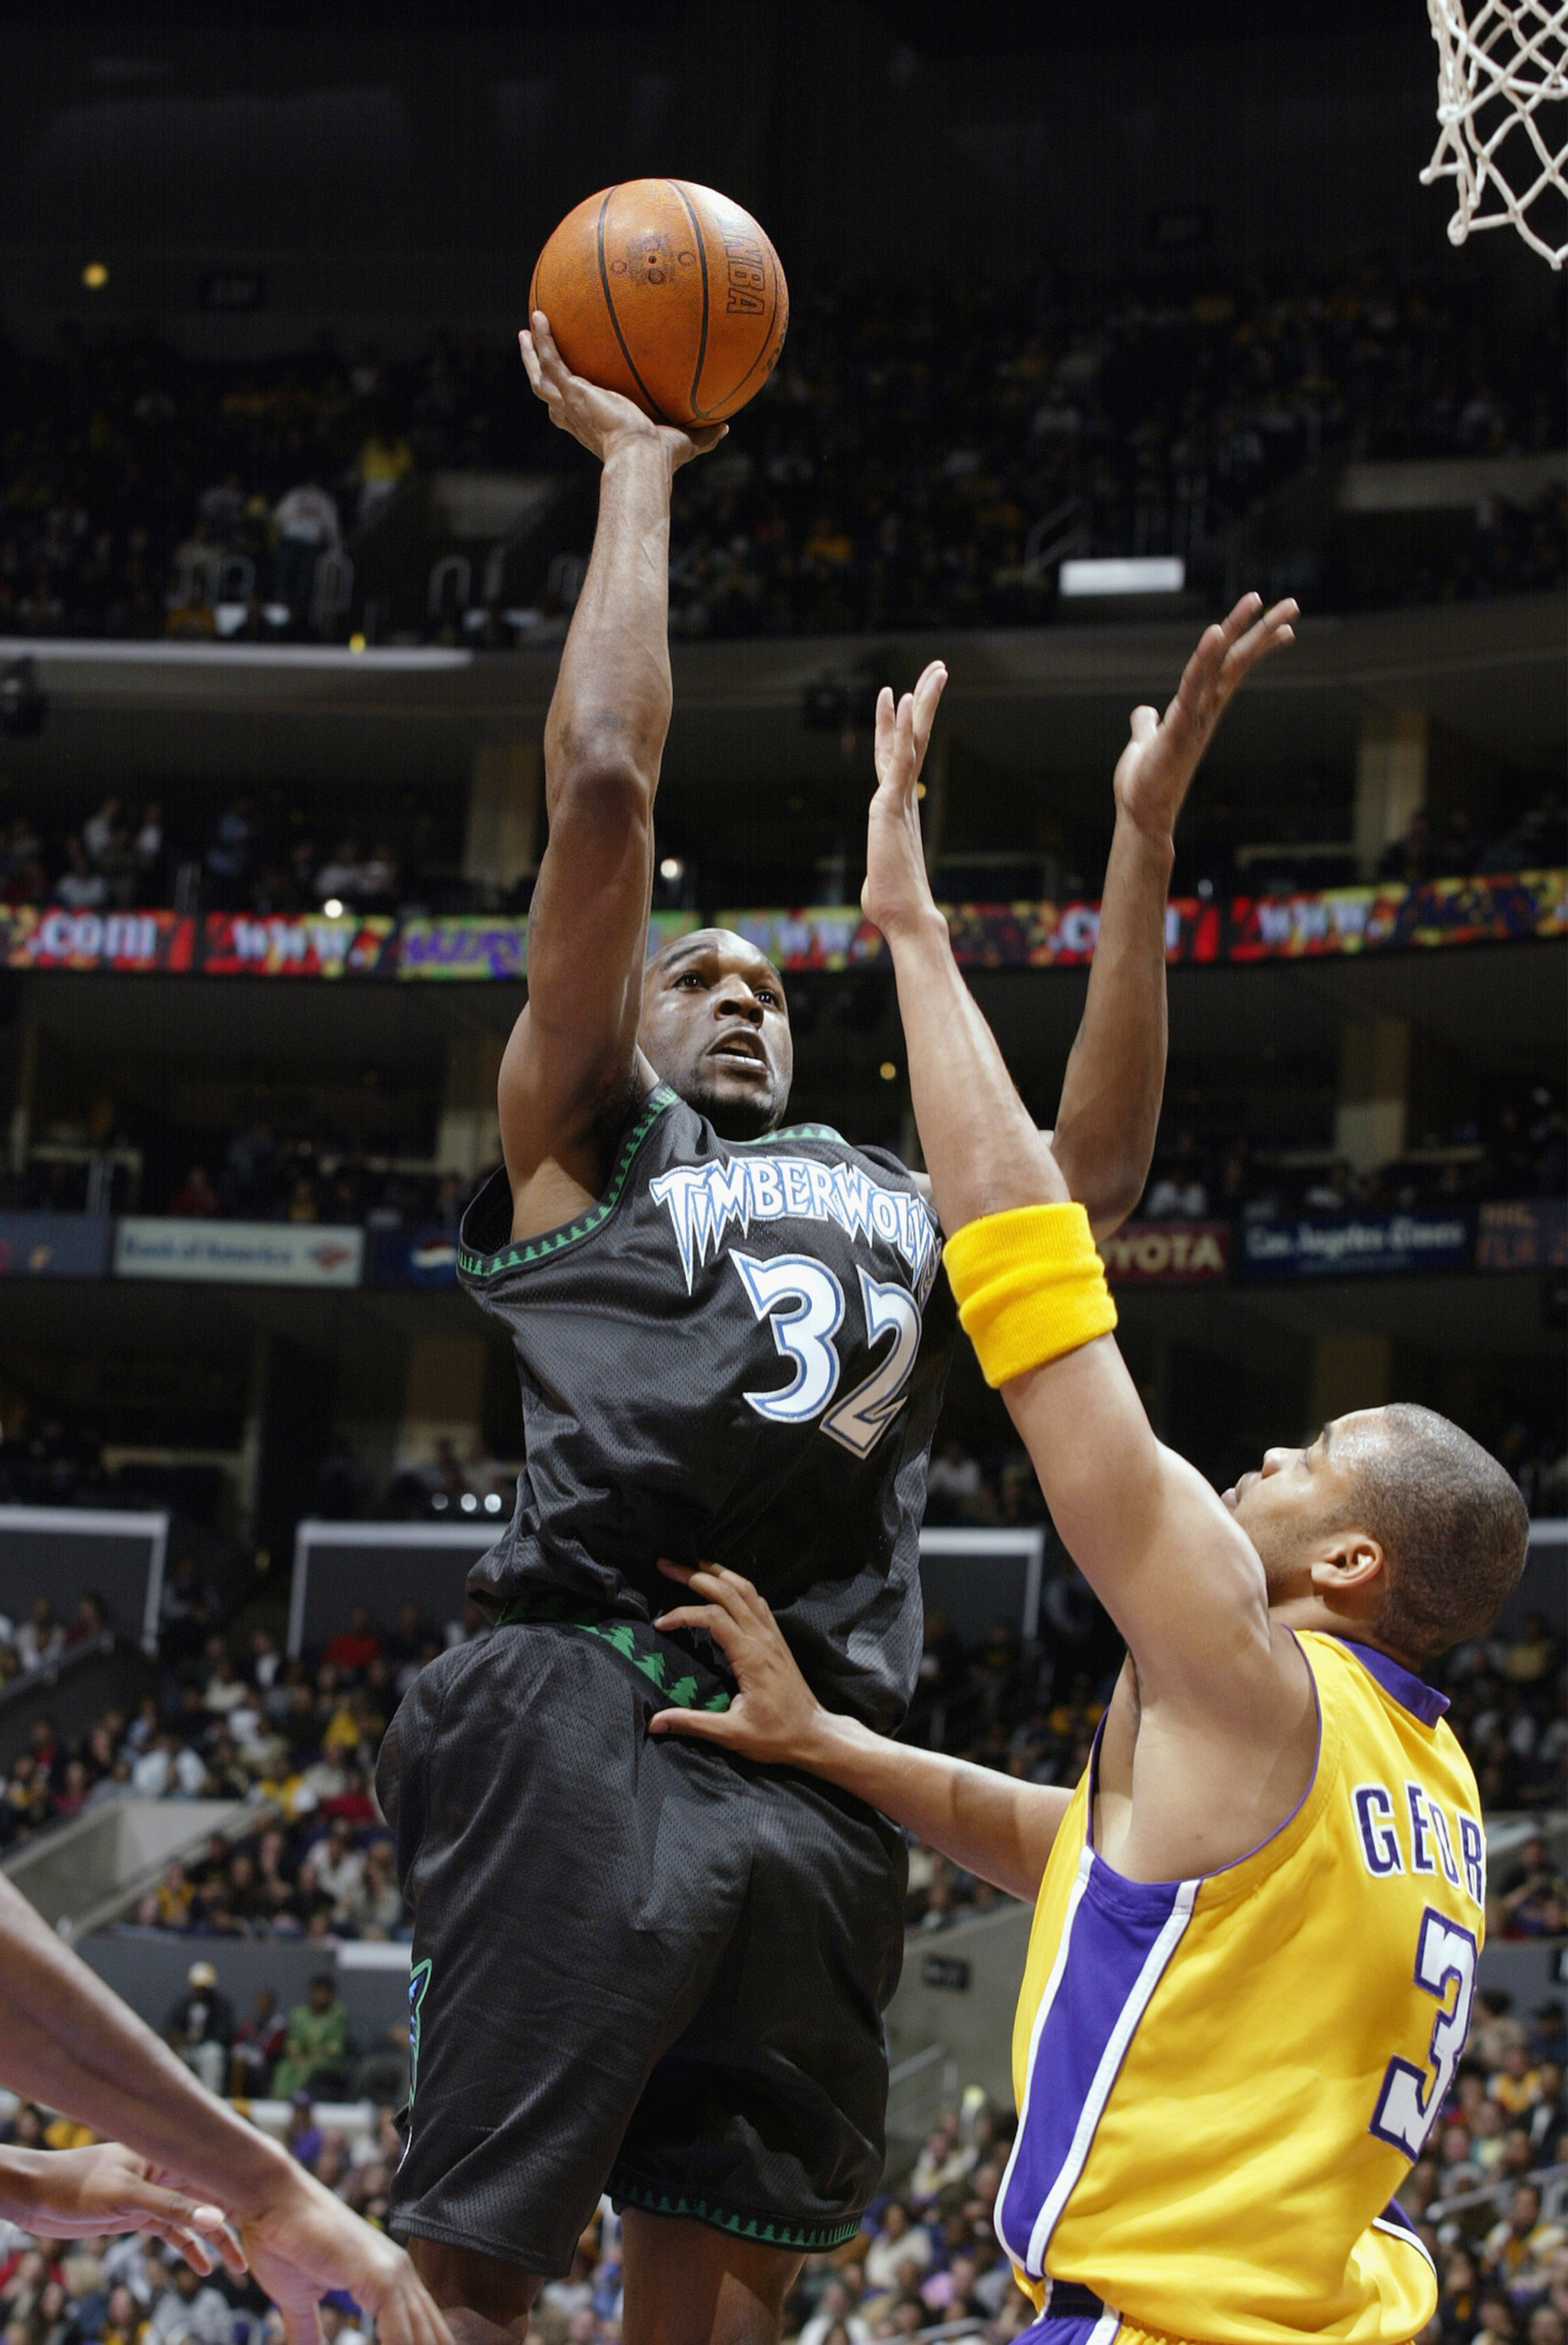 LOS ANGELES - MARCH 7:  Joe Smith #32 of the Minnesota Timberwolves puts a shot up over Devean George #3 of the Los Angeles Lakers during the NBA game at Staples Center on March 7, 2003 in Los Angeles, California.  The Lakers won 106-96.  NOTE TO USER: Us